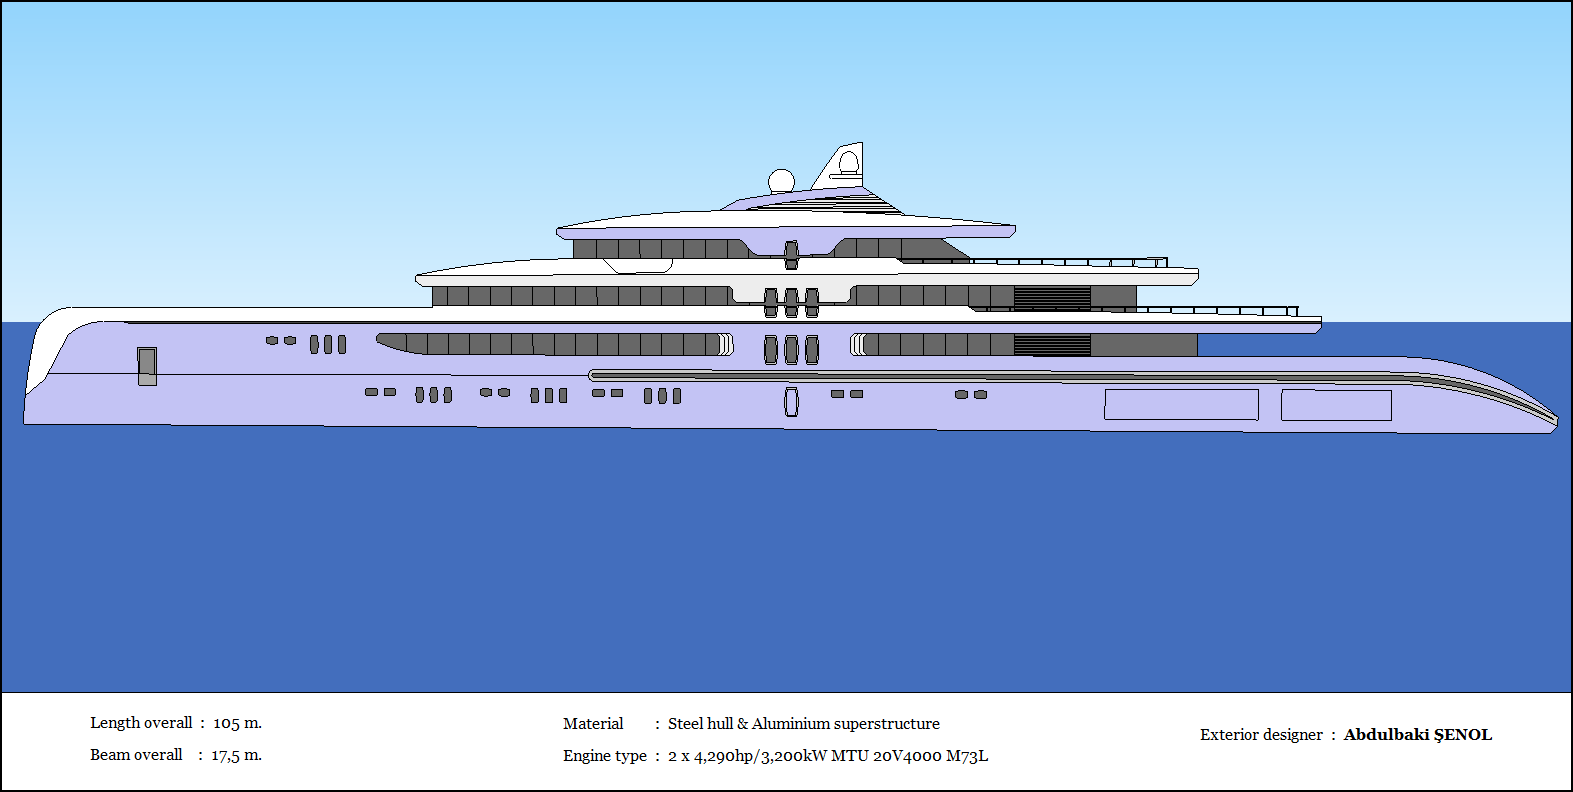 mega luxury yachts sale with Mega Yacht Concept Design 105m 4 Respond on Superyacht Amore Mio besides United States in addition Sinot Nature Yacht Monaco 09 23 2017 likewise Render E as well Mega Yacht Concept Design 105m 4 respond.